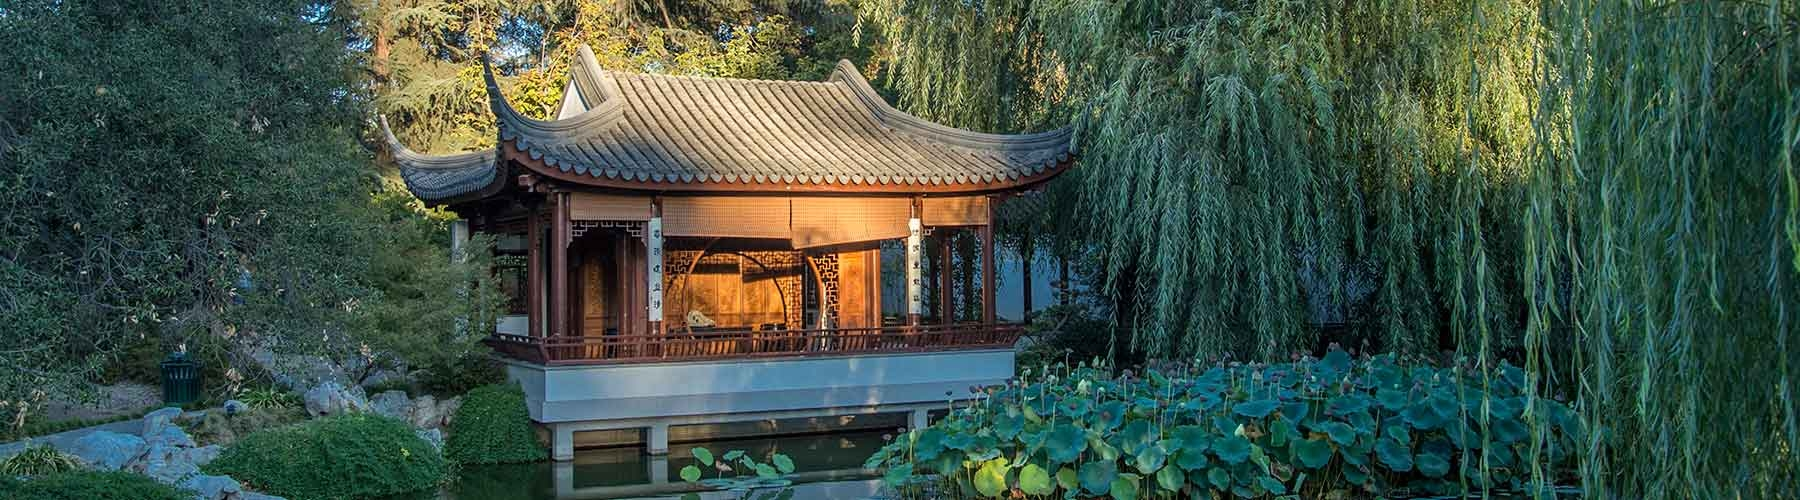 pavilion in the chinese garden